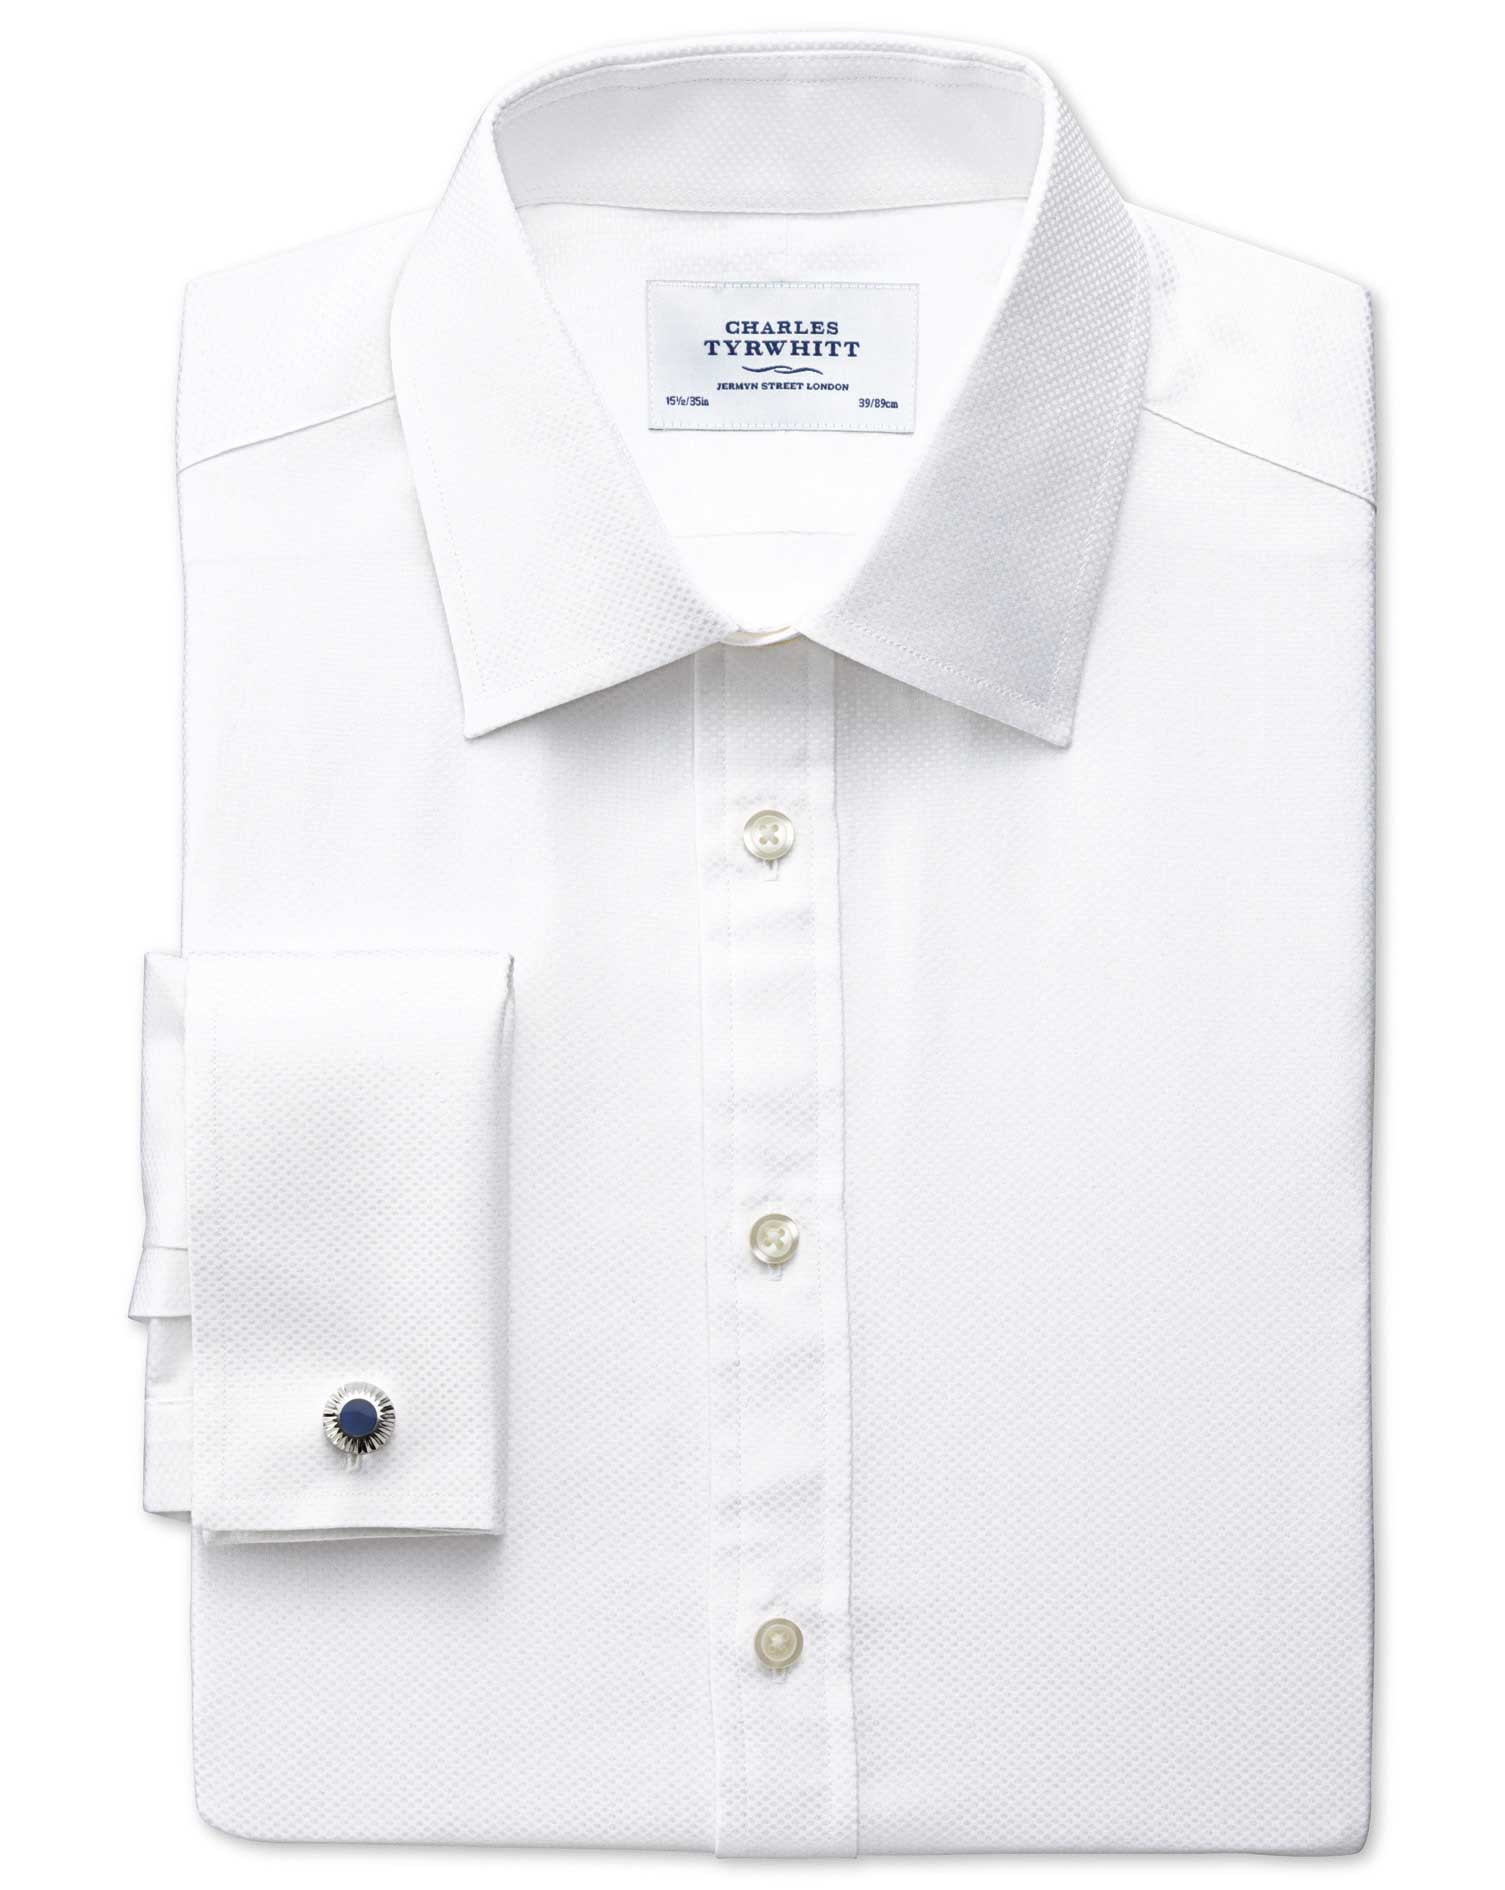 Classic Fit Pima Cotton Double-Faced White Formal Shirt Double Cuff Size 16/38 by Charles Tyrwhitt